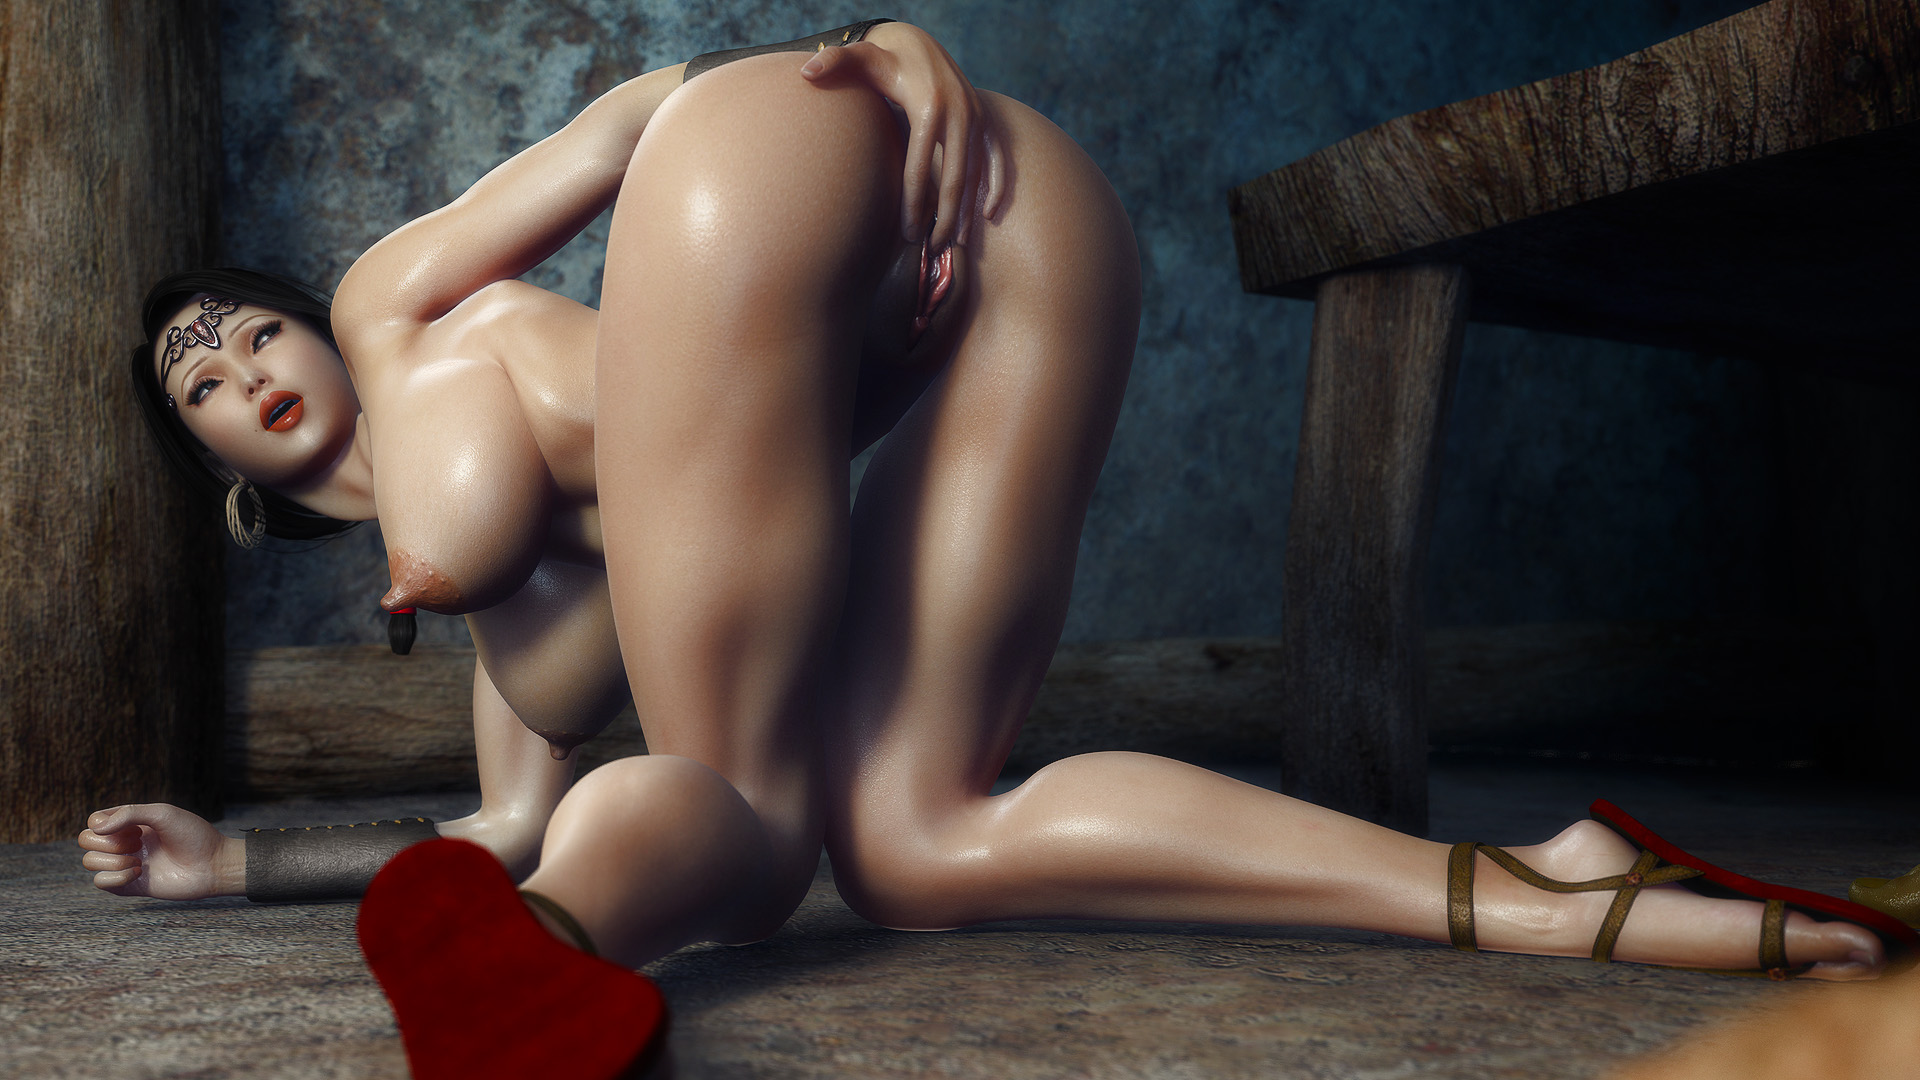 Hd a 2 z wallpapers 3d xxx  erotic image